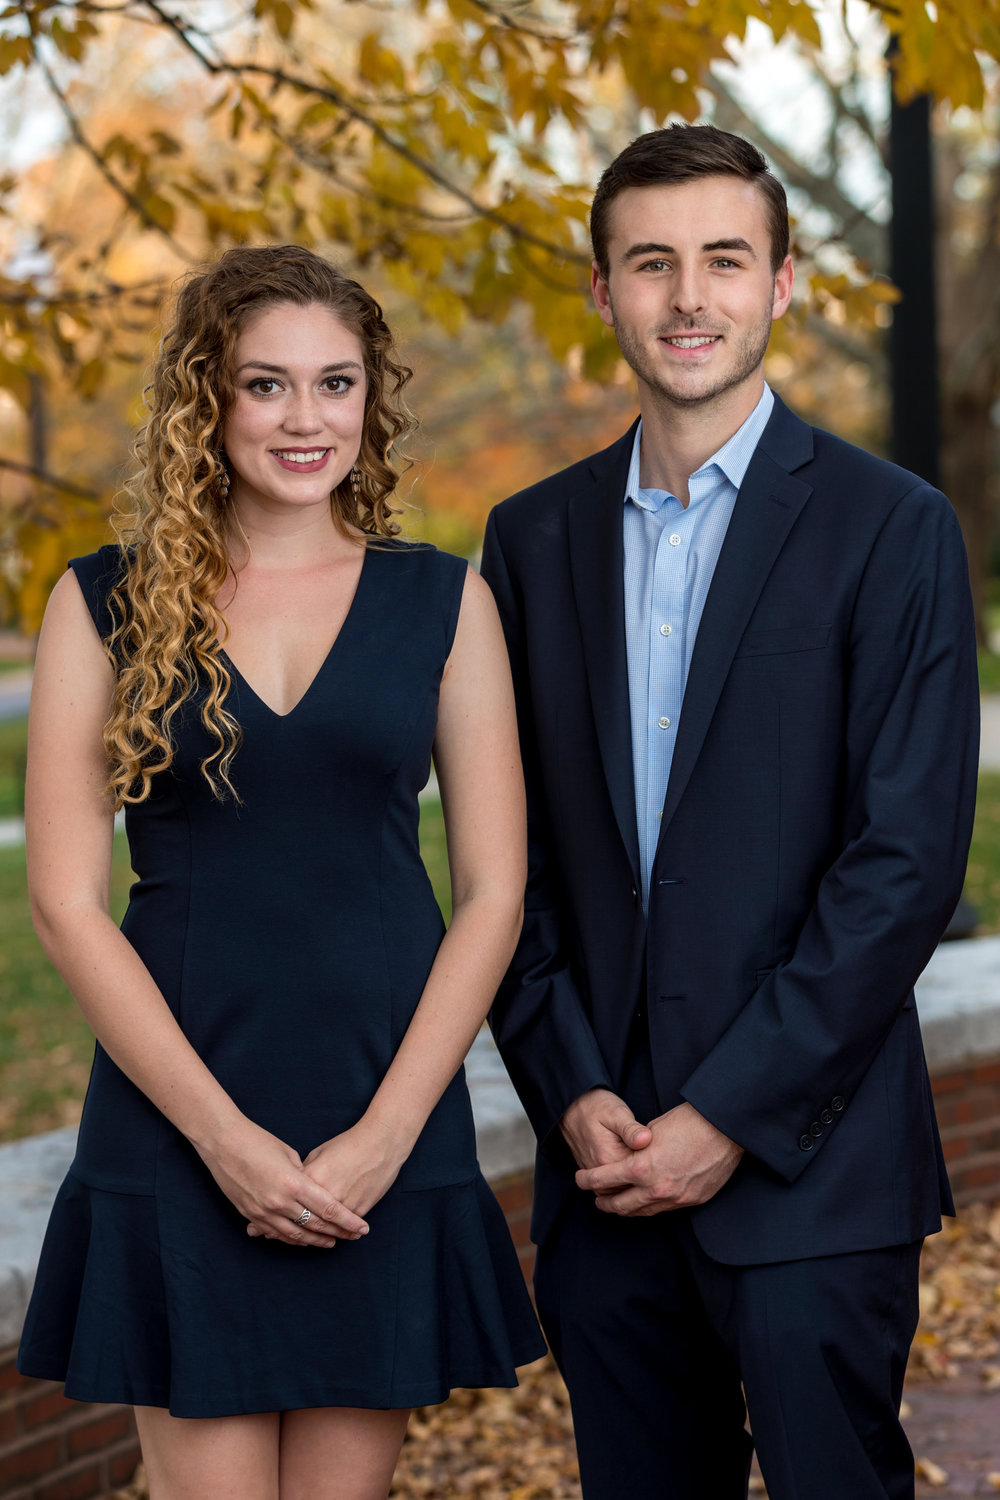 UConn students Haley Hinton and Colin Mortimer, members of the USG University Town Relations Committee, are running for Mansfield Town Council. (Charlotte Lao/The Daily Campus)